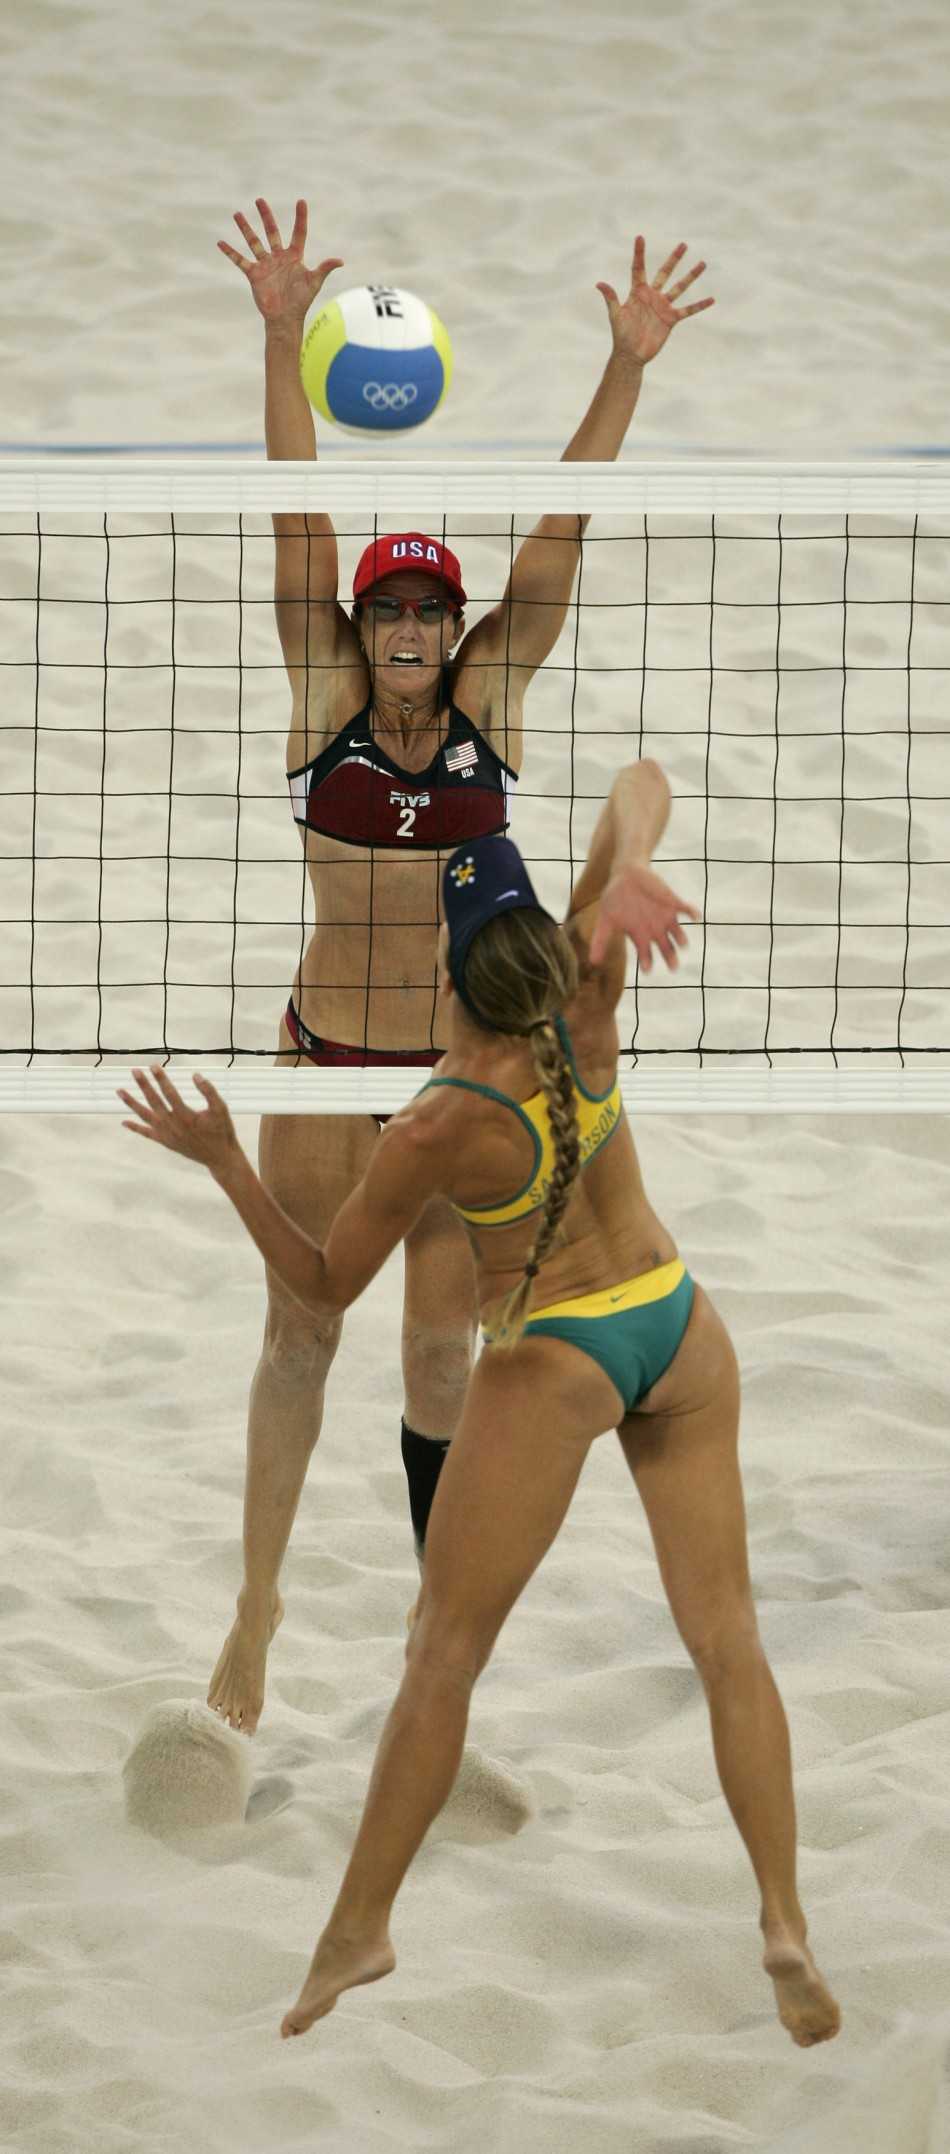 Women's Beach Volleyball game